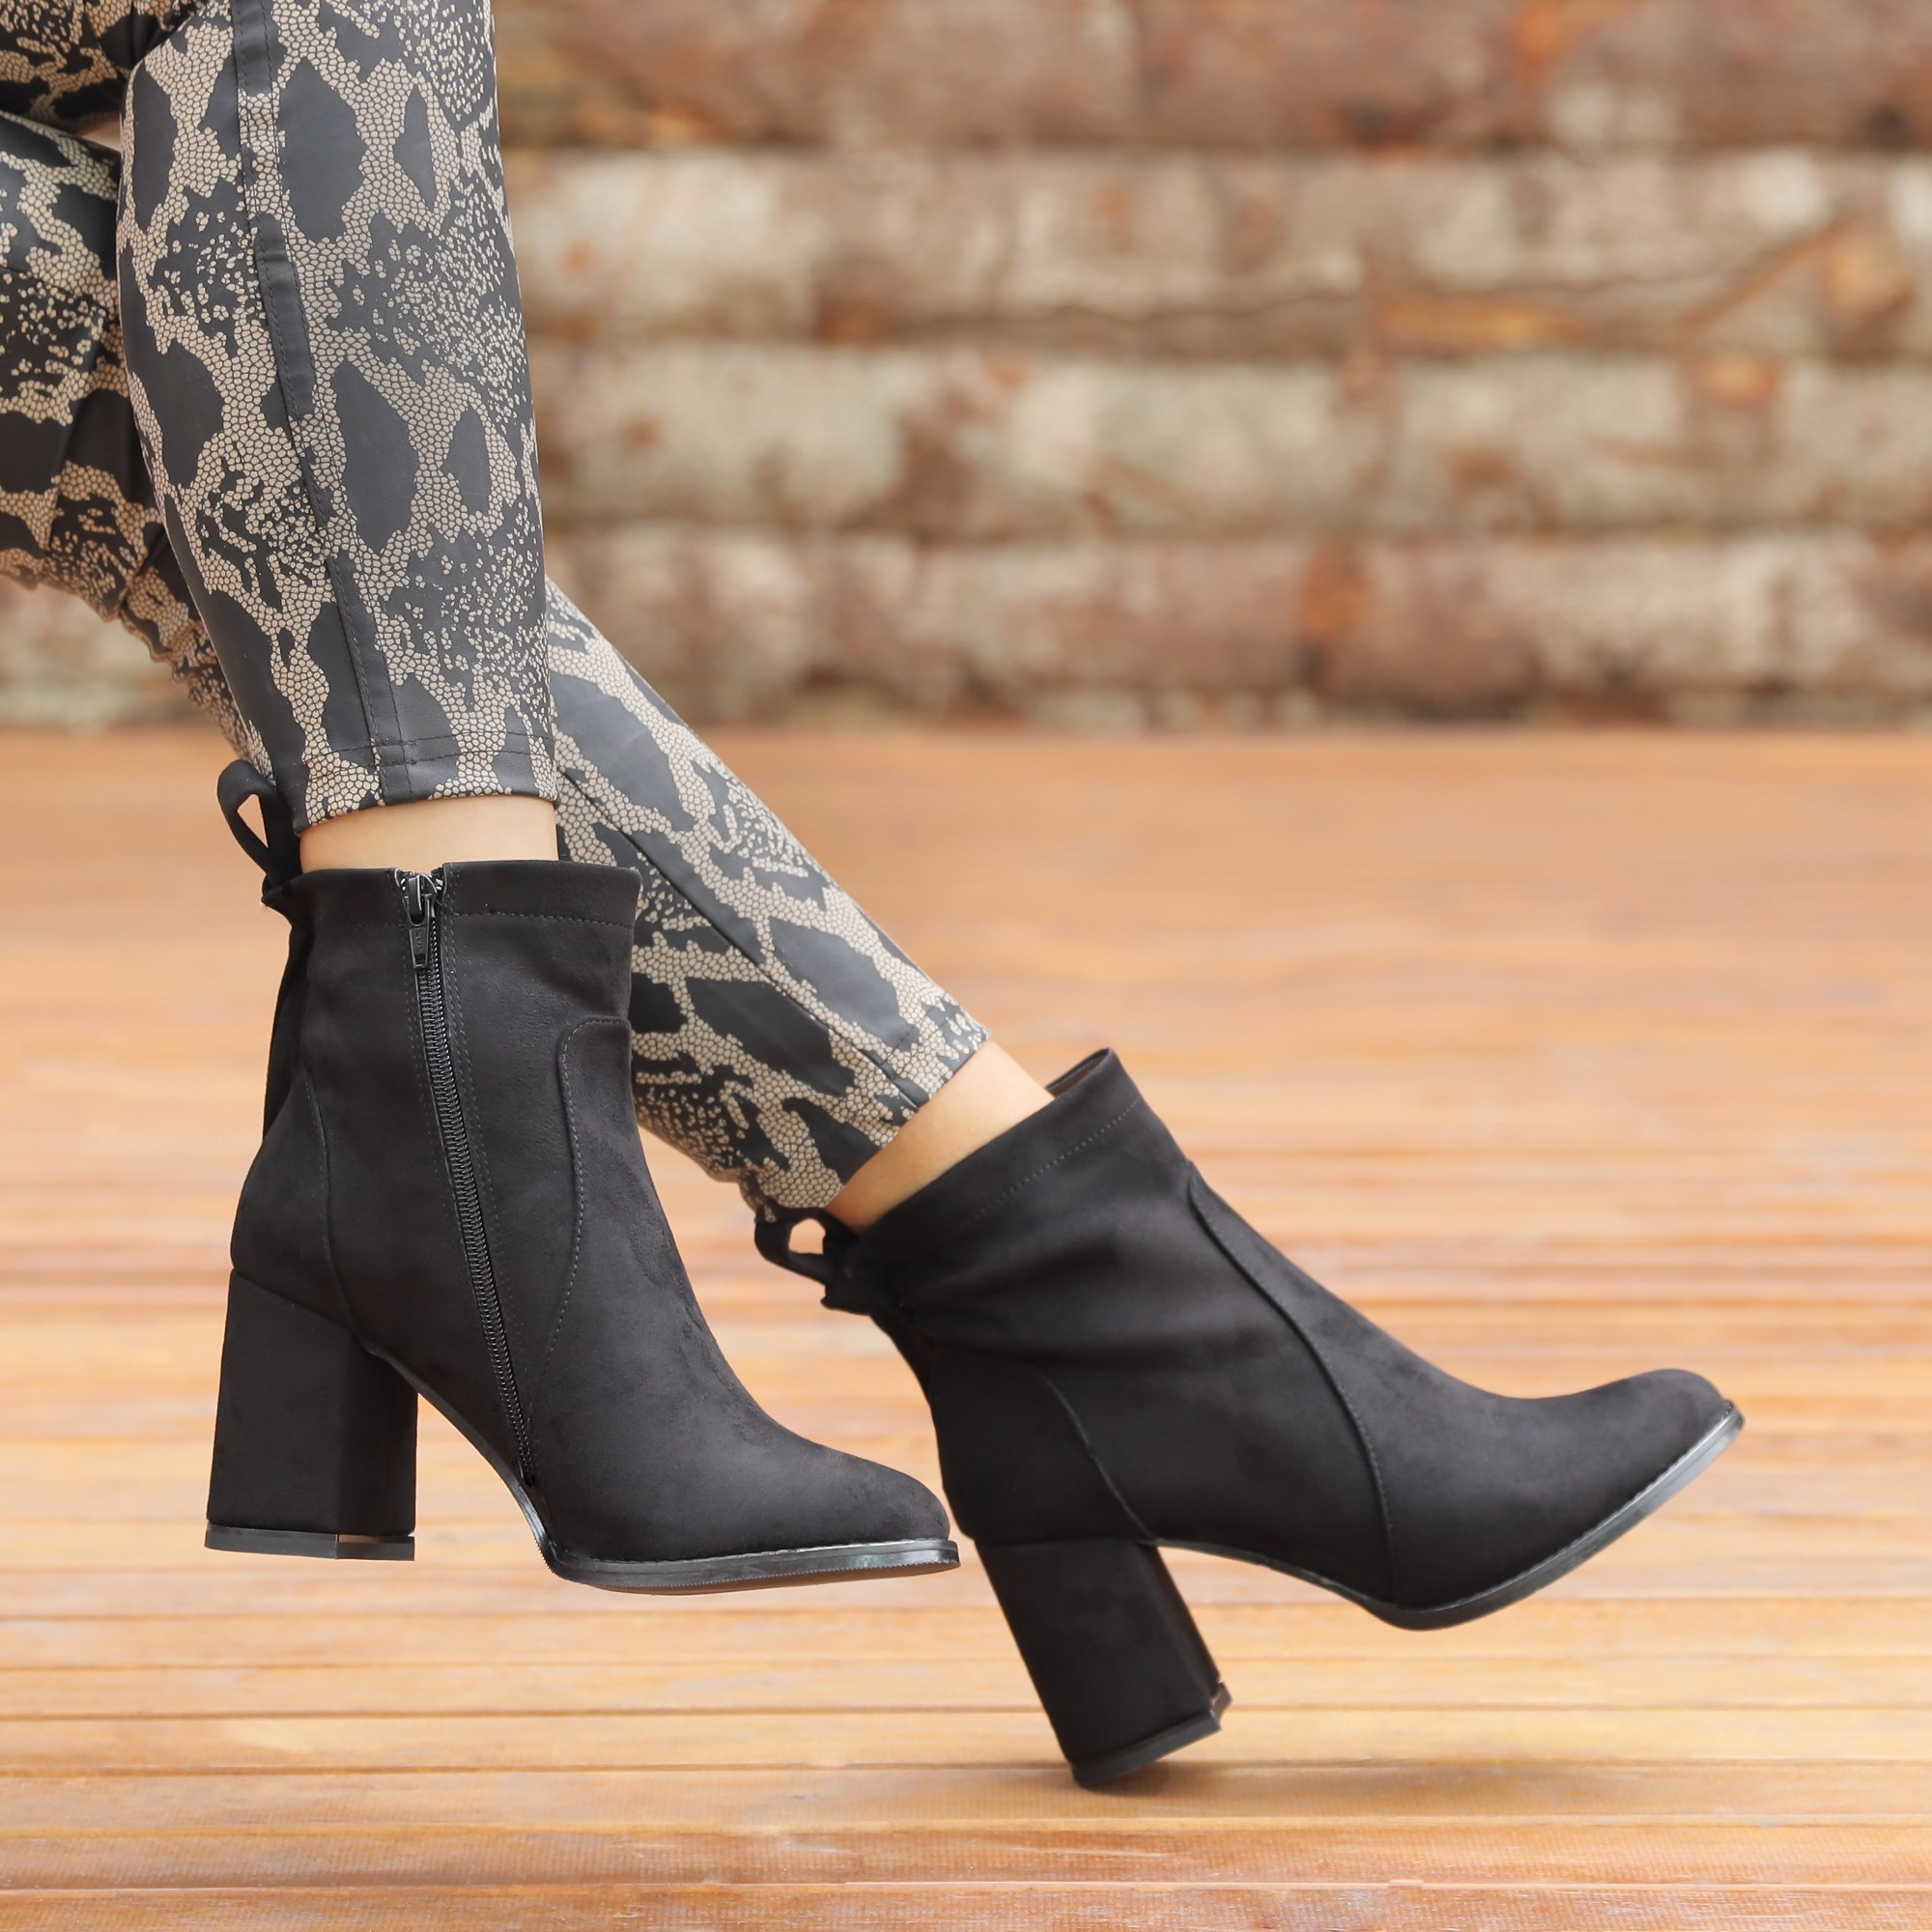 Poterson Suede Black Thick Heeled Boots